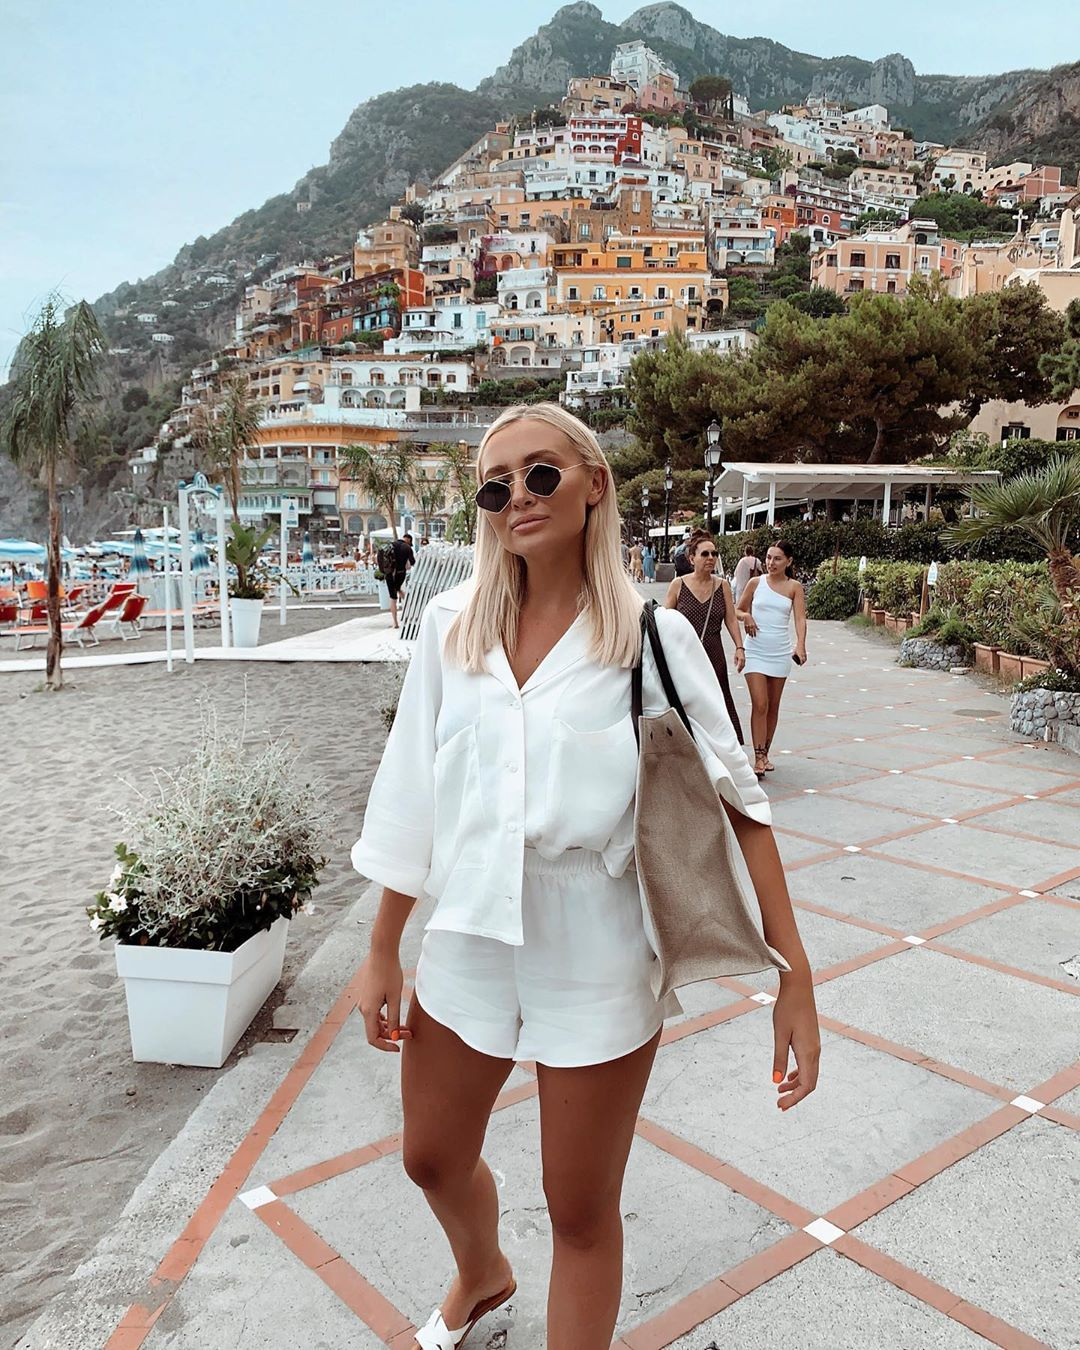 Sarah Ashcroft On Instagram Exploring Beautiful Positano Outfit Is Tagged Sarah Ashcroft Outfits Sarah Ashcroft Fashion